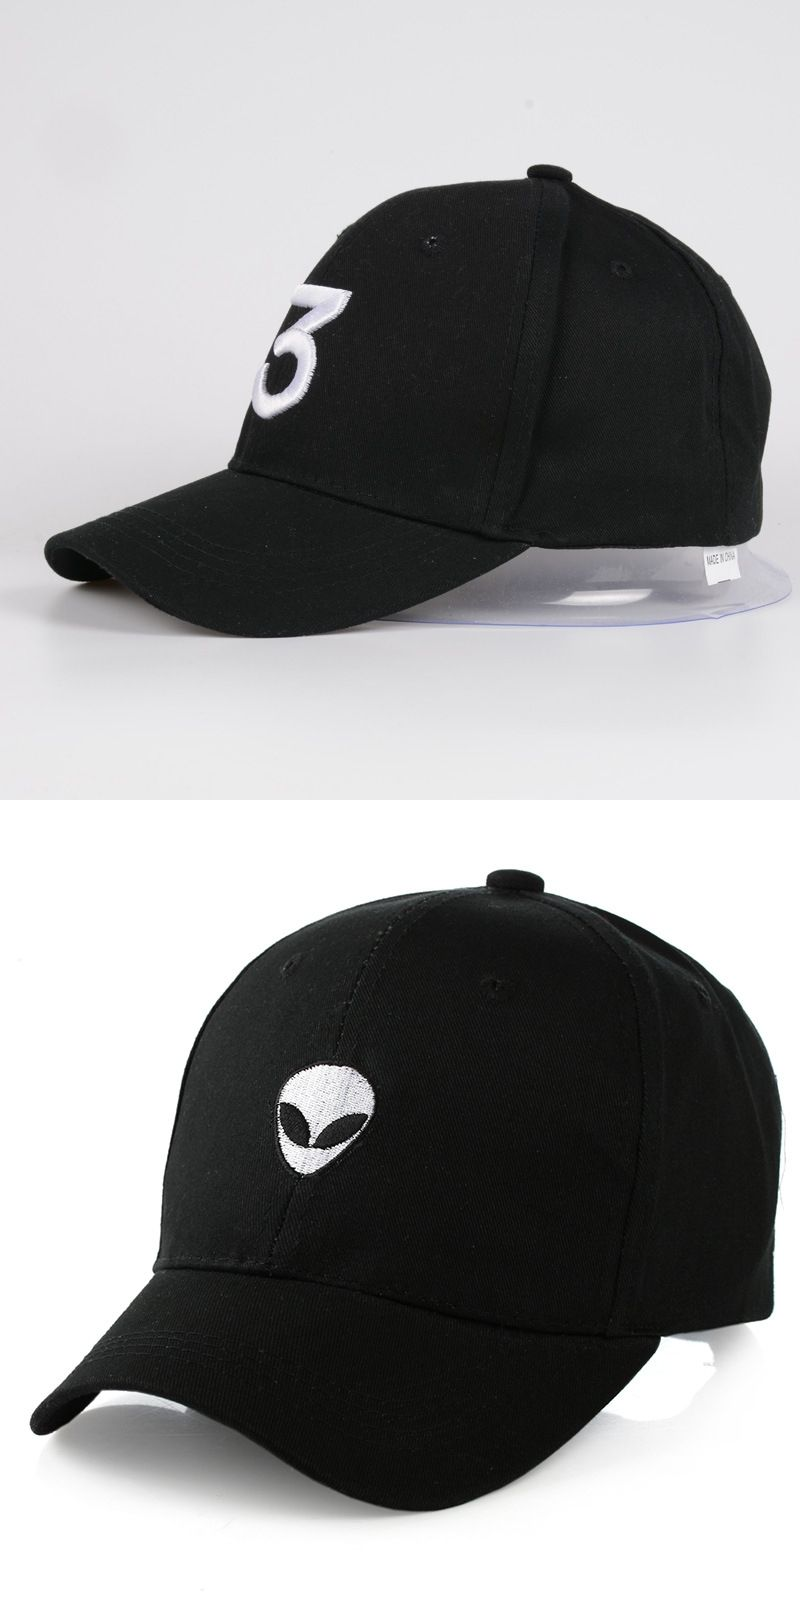 426c7620bc5 Hot aliens Outstar saucer Space E.T UFO fans black fabric baseball caps hat  for men women